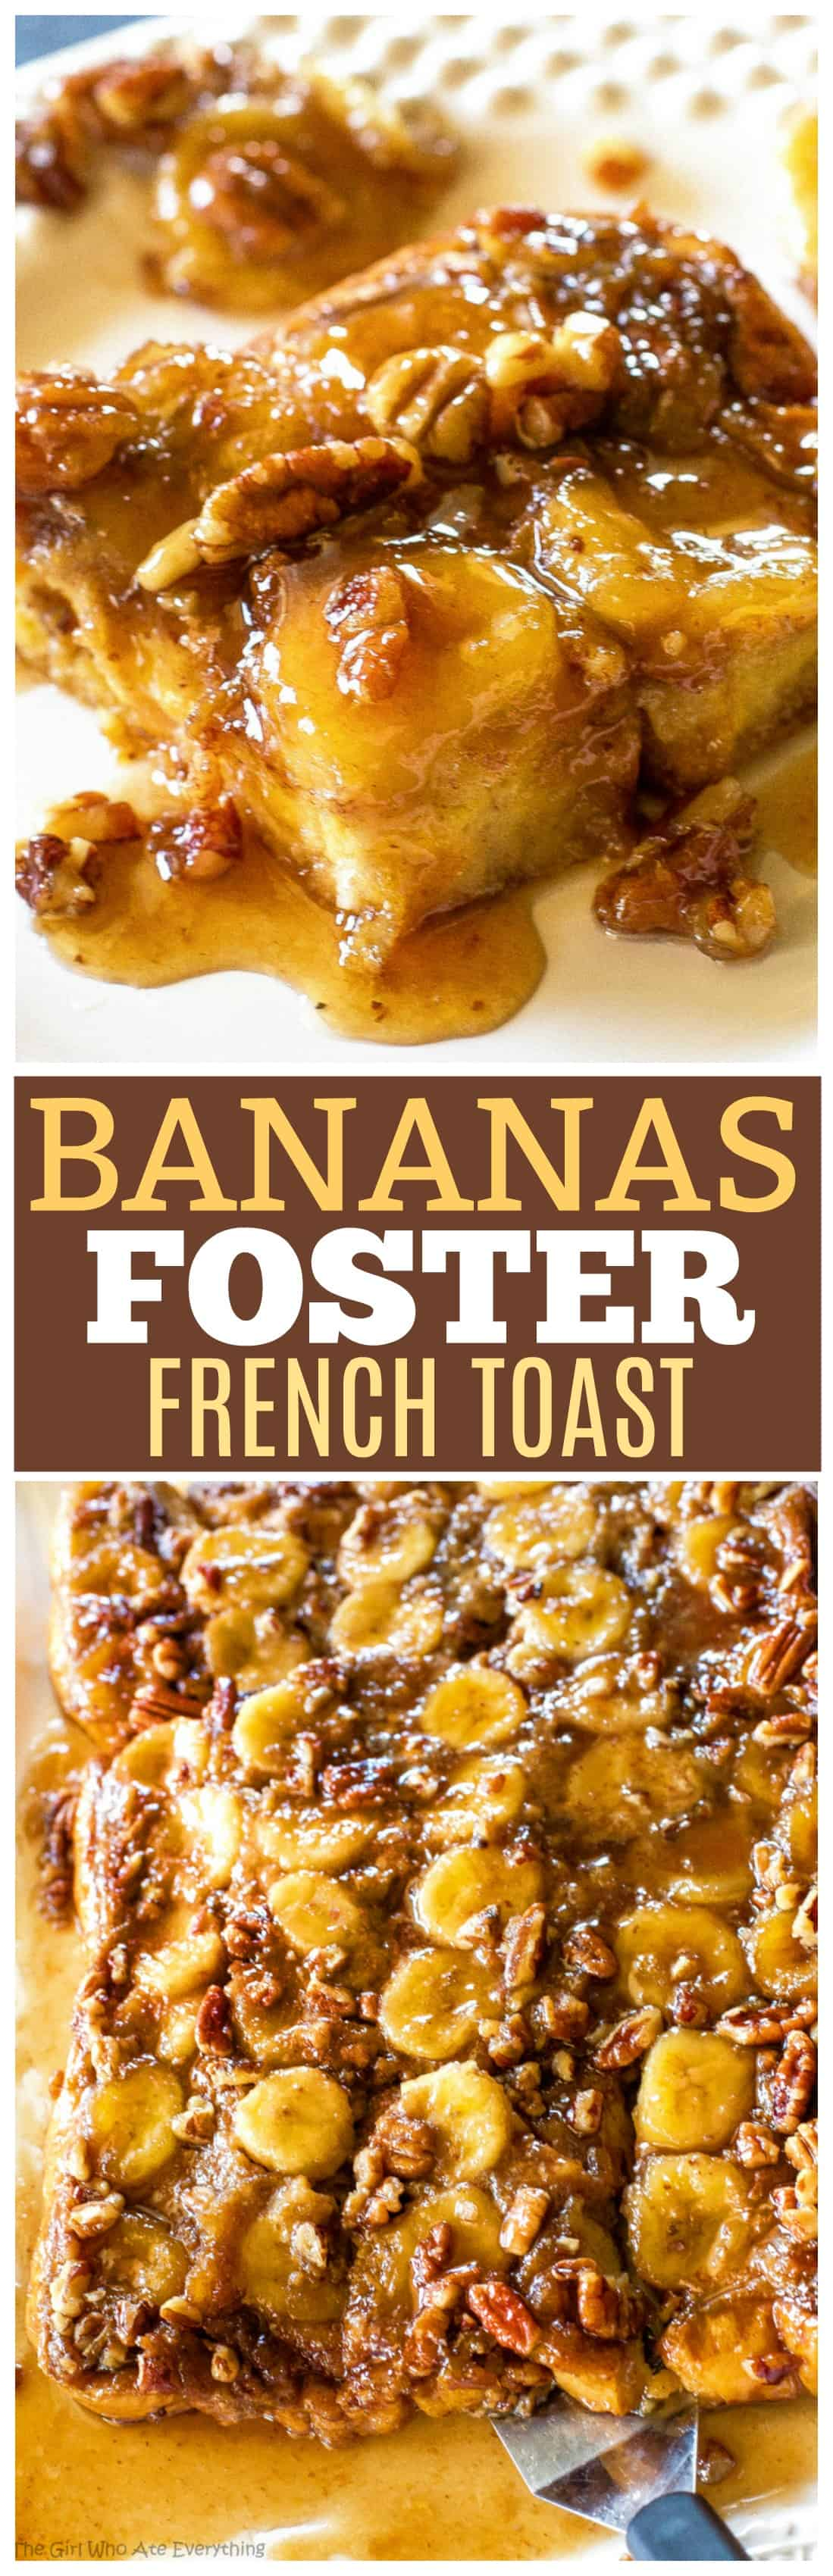 Bananas Foster French Toast The Girl Who Ate Everything